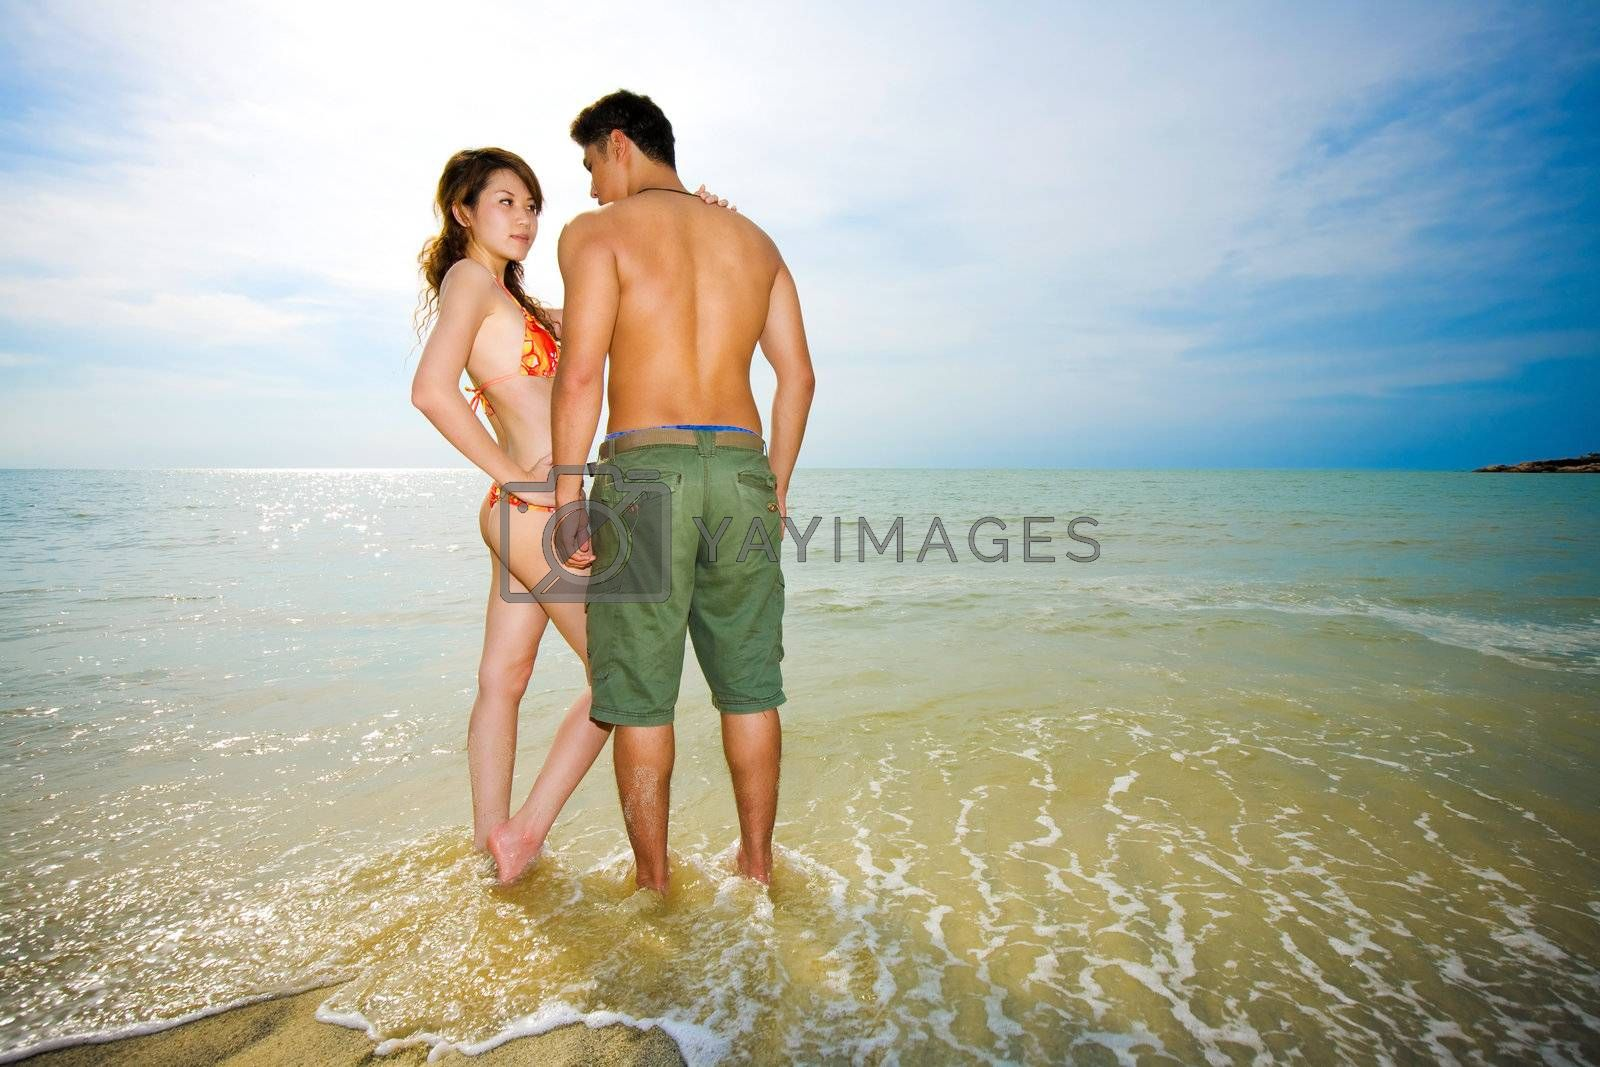 asian couple dating on the romantic beach